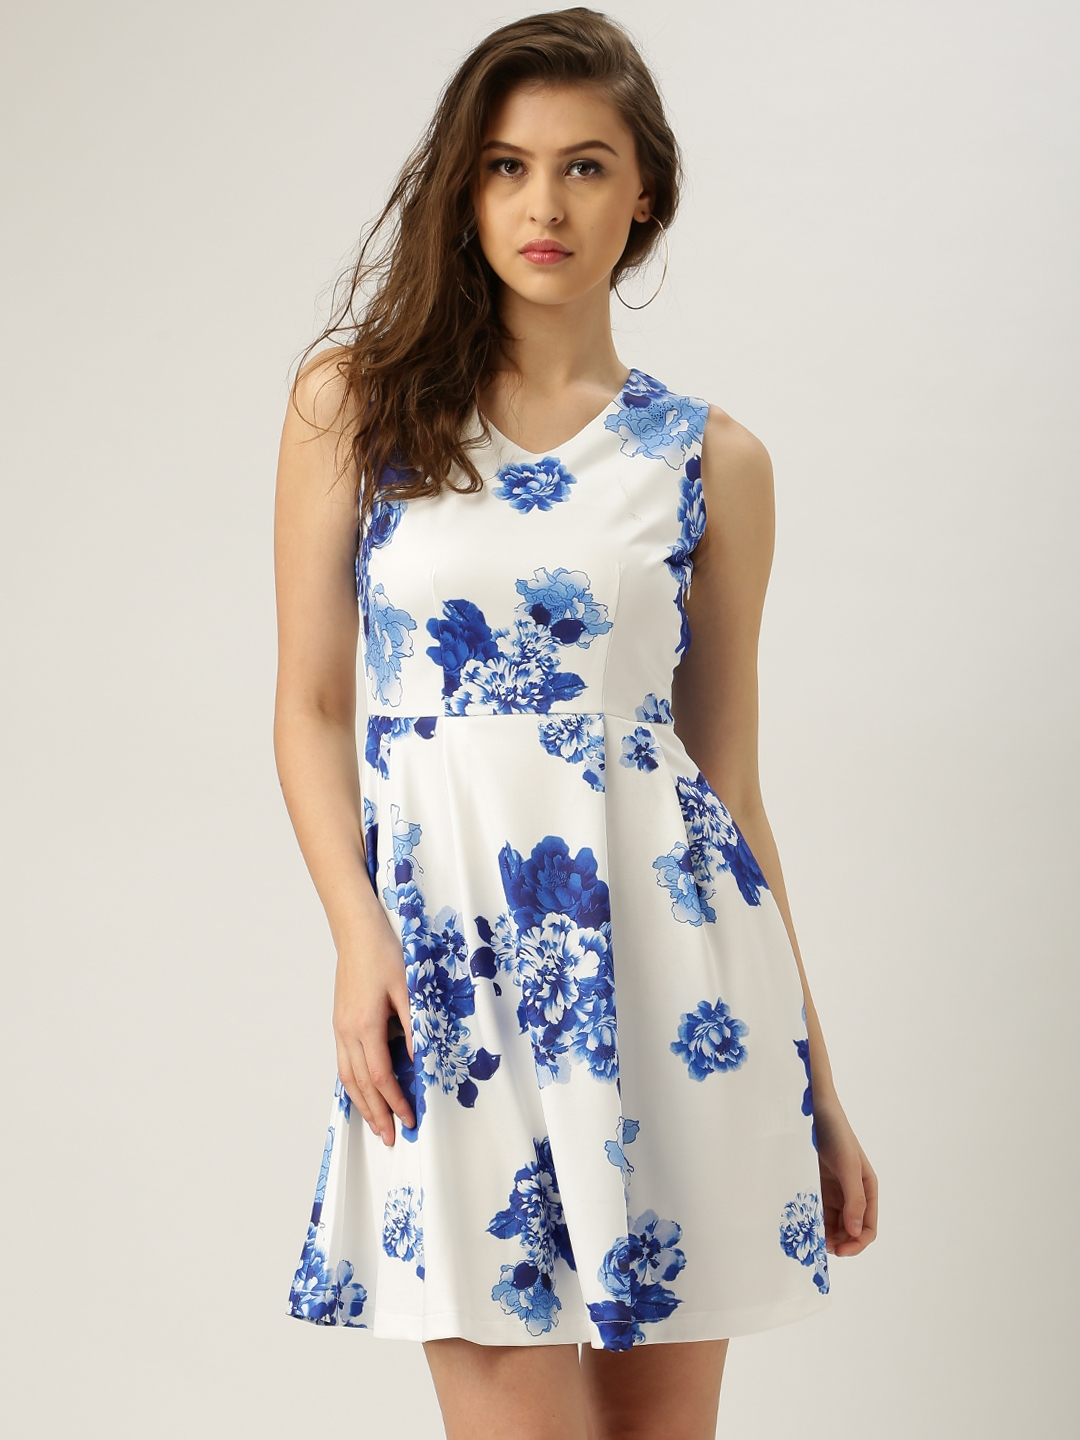 Buy all about you from deepika padukone white blue floral print image izmirmasajfo